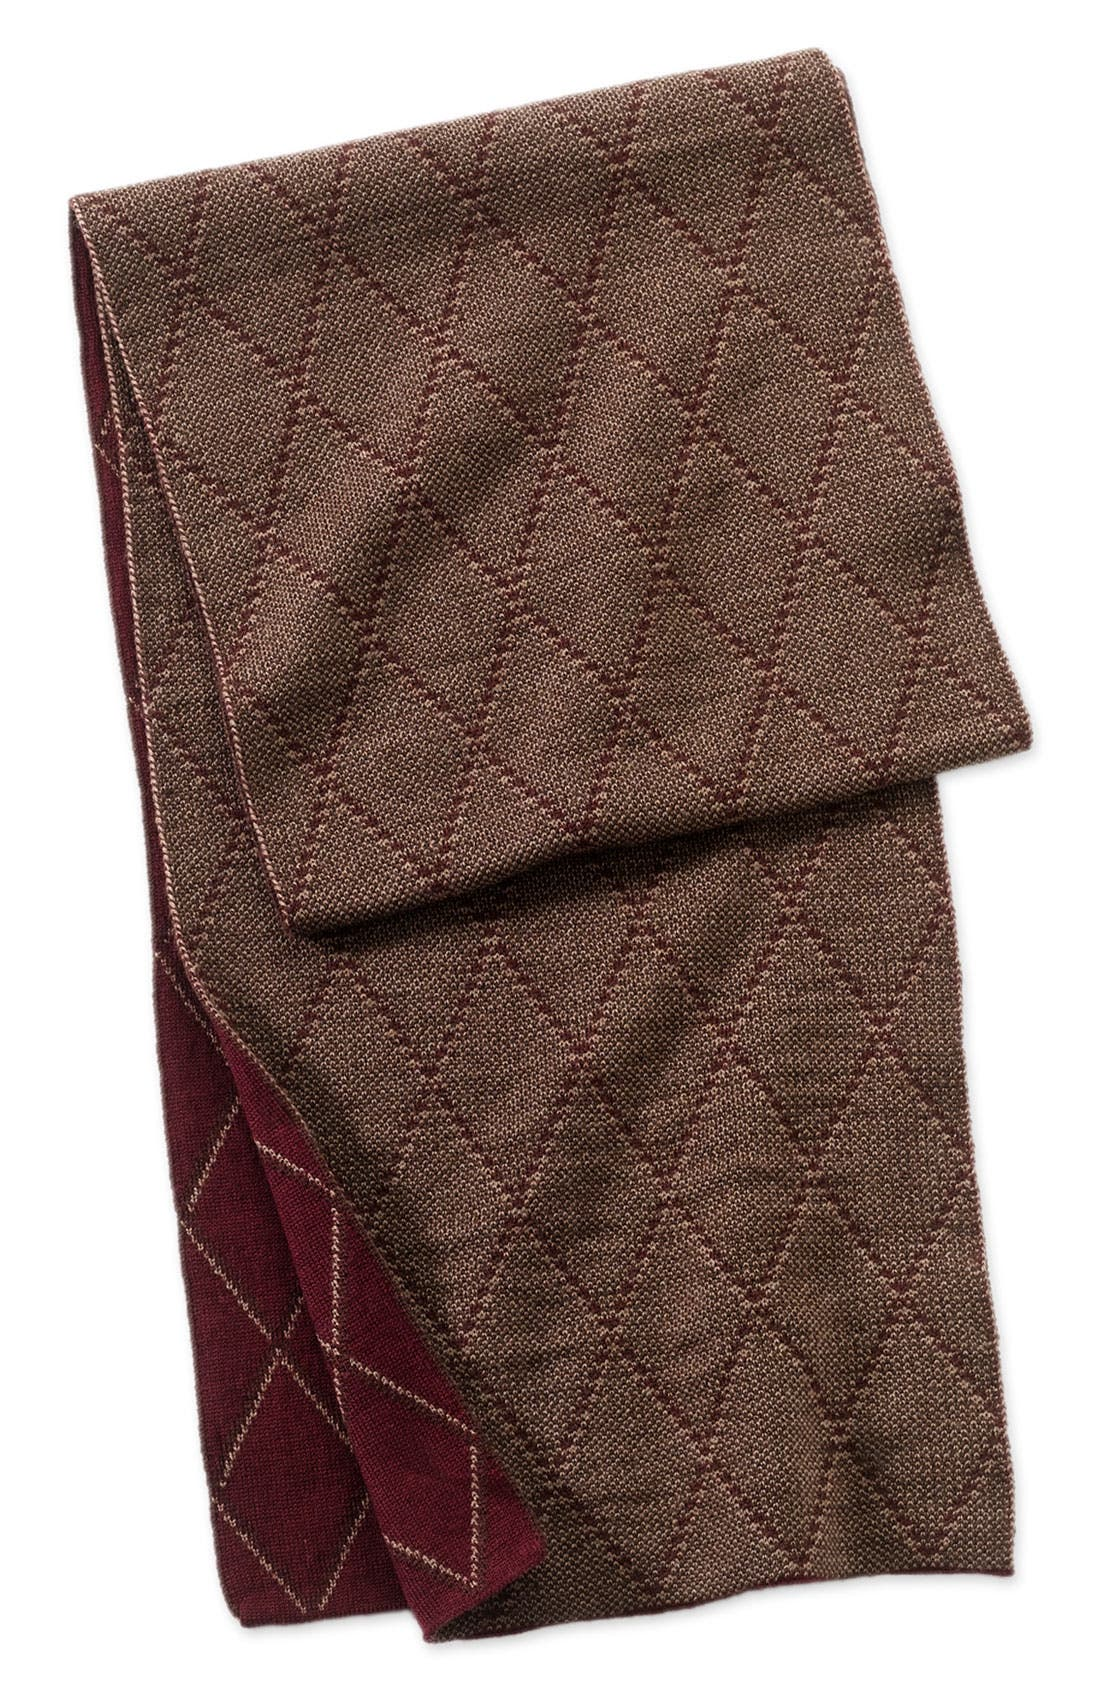 Alternate Image 1 Selected - Nordstrom Patterned Wool Scarf